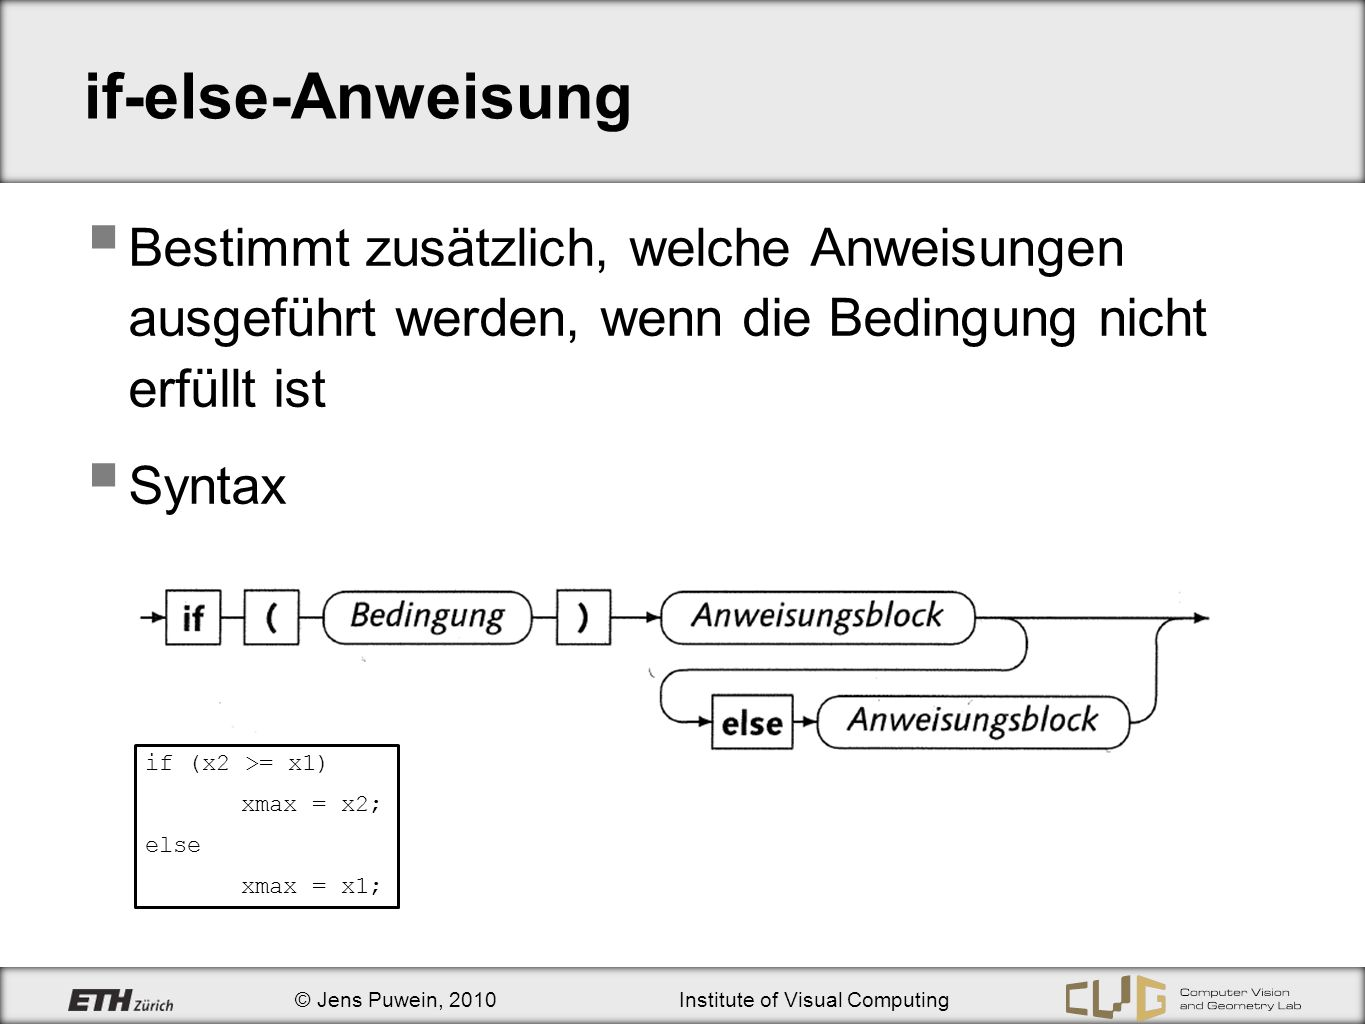 © Jens Puwein, 2010Institute of Visual Computing if-else-Anweisung Verschachtelung bool a = true, b = false; if (a) if (b) cout << … ; else cout << zweites if ; bool a = false, b = true; if (a) { if (b) cout << … ; } else cout << erstes if ; Ausgabe: zweites if erstes if .